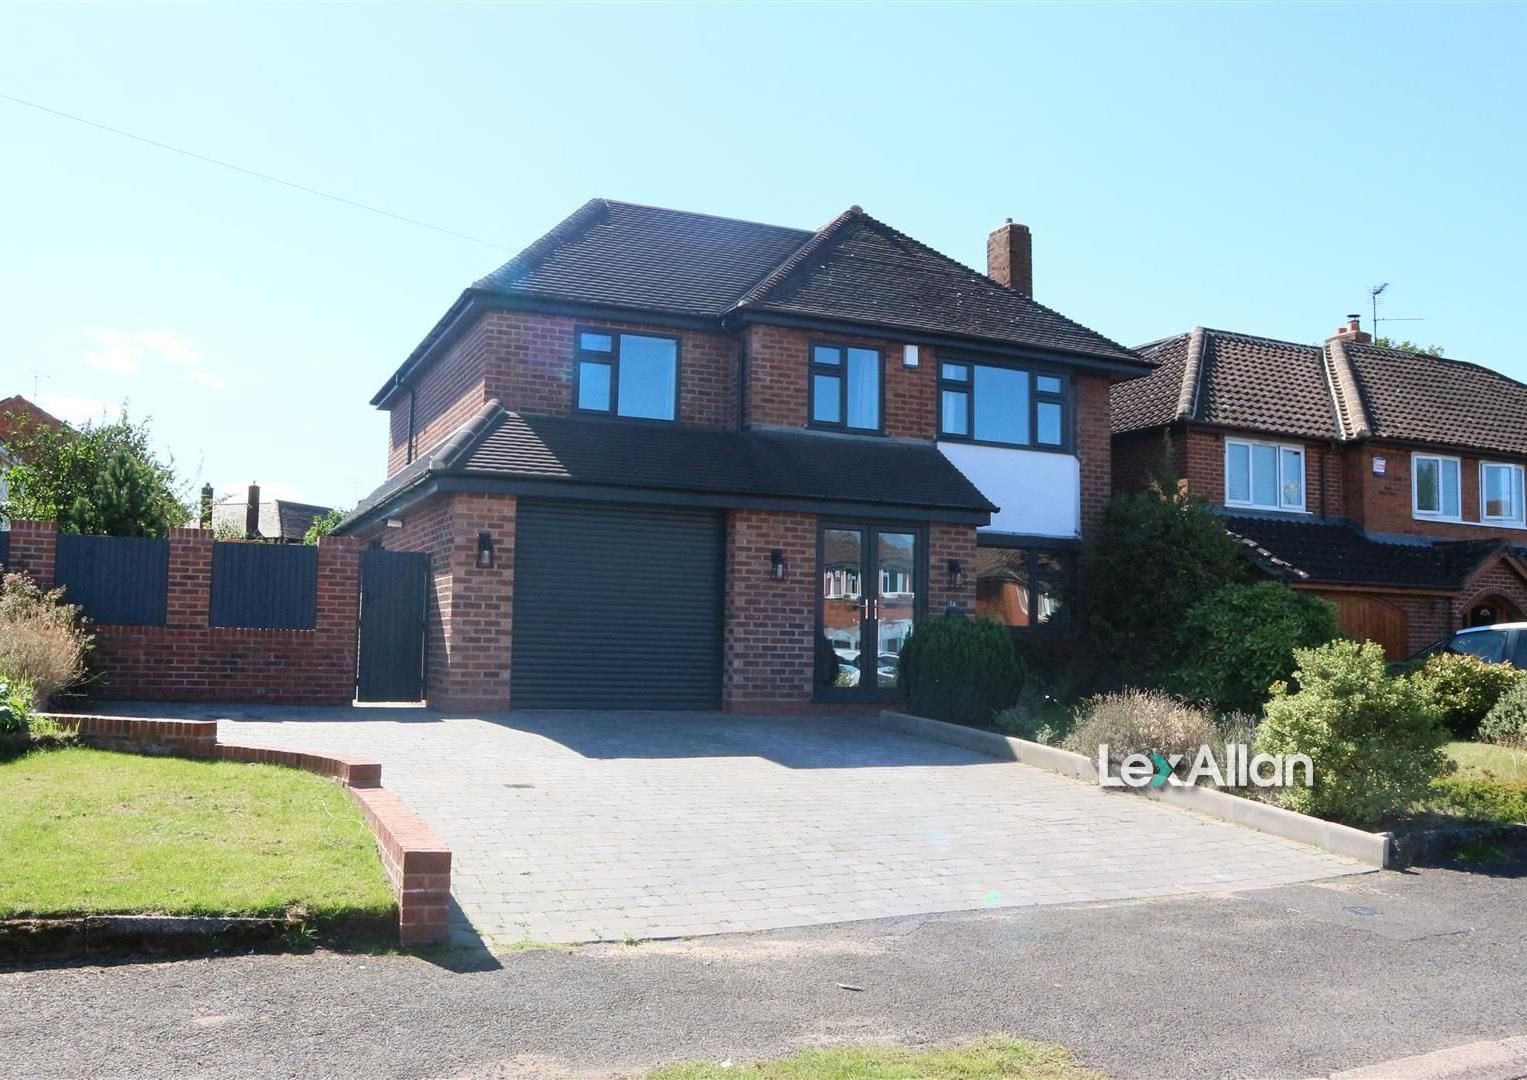 4 bed detached for sale in Norton, DY8